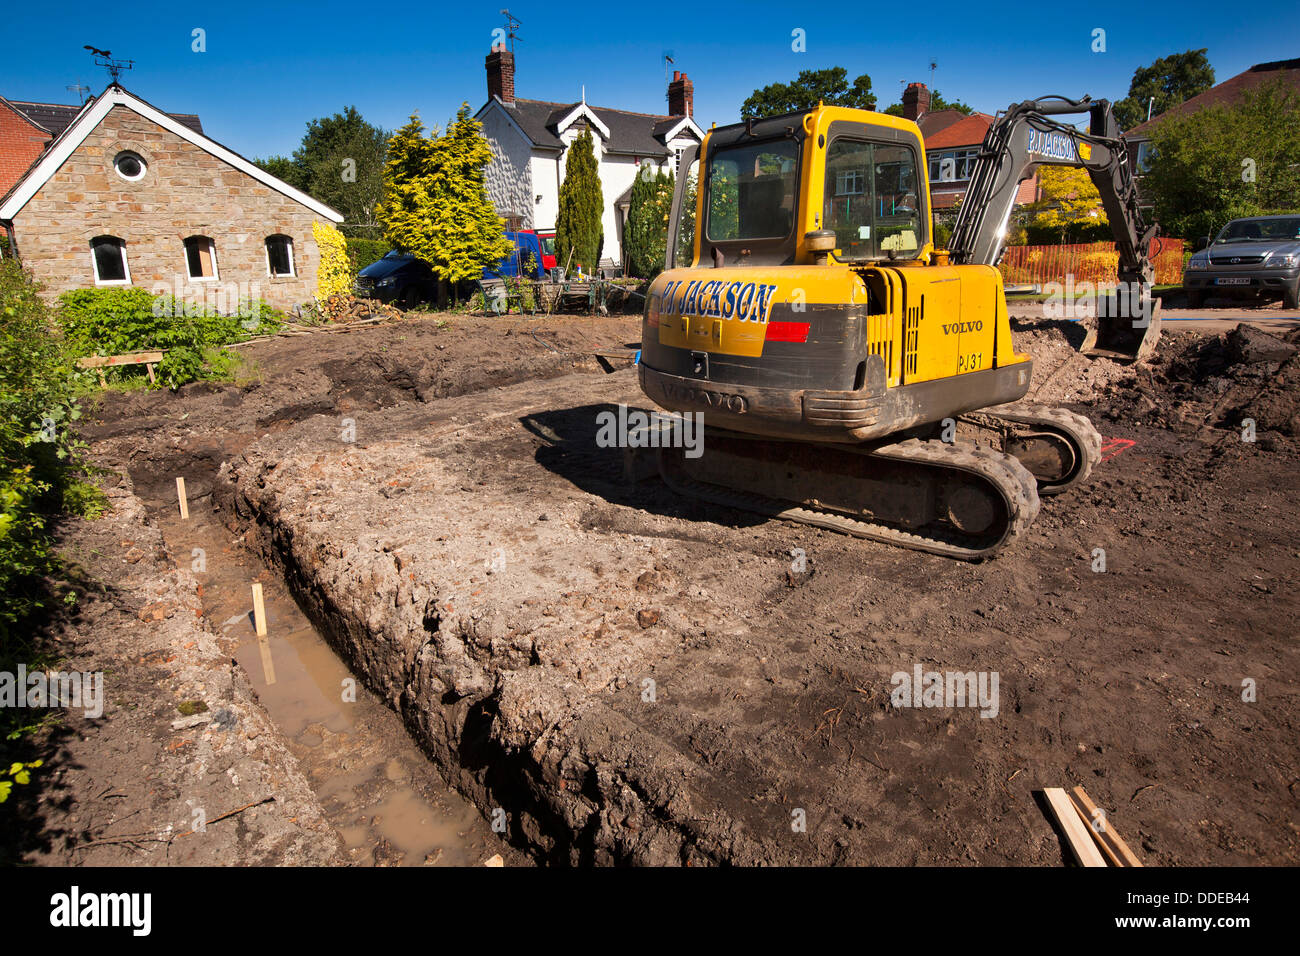 Al844 self building house preparing site volvo digger for Digging foundation for house